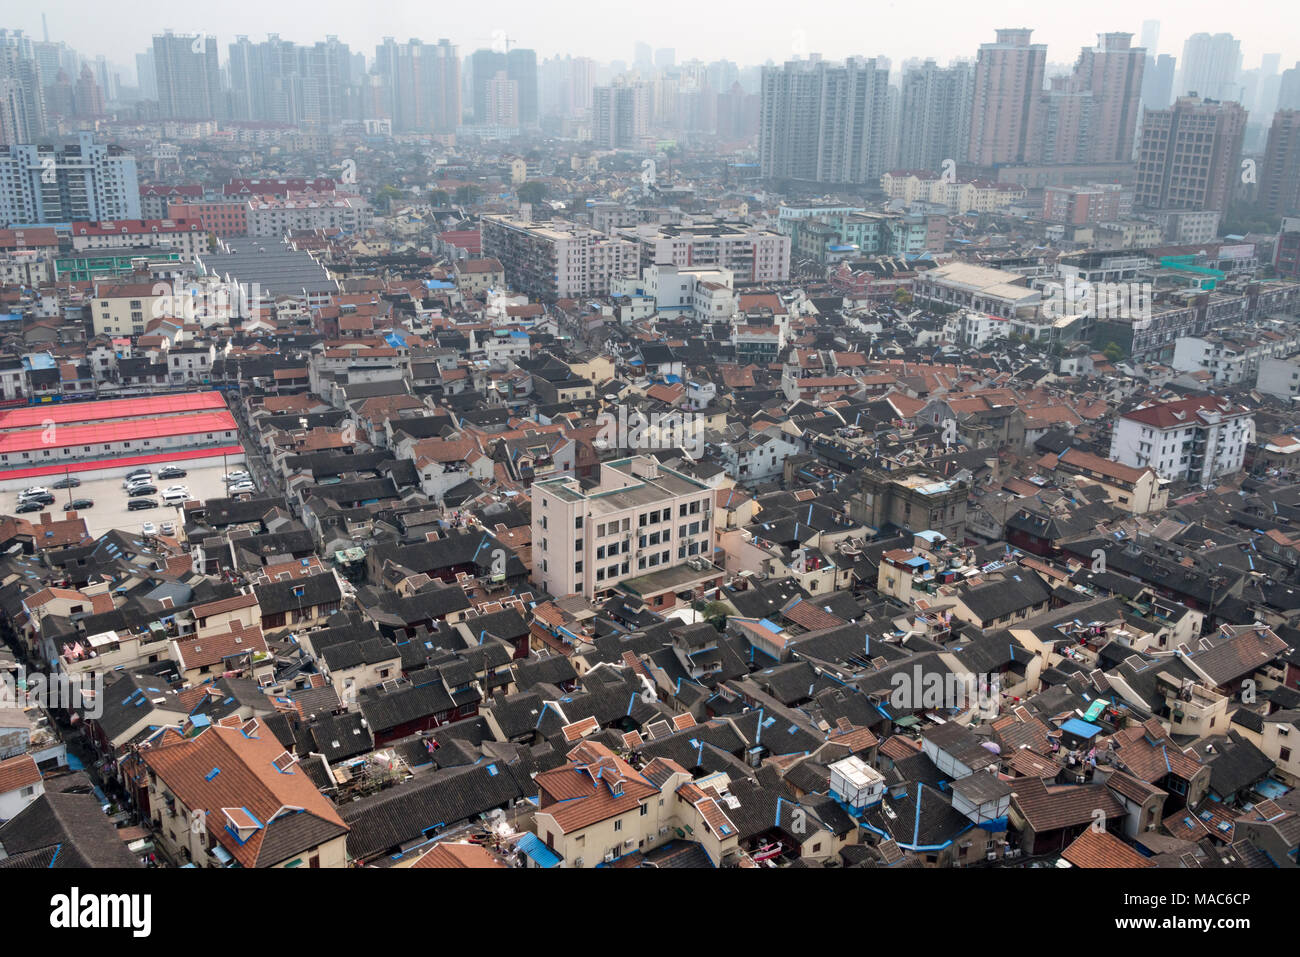 Traditional houses with modern high rises, Pudong, Shanghai, China - Stock Image